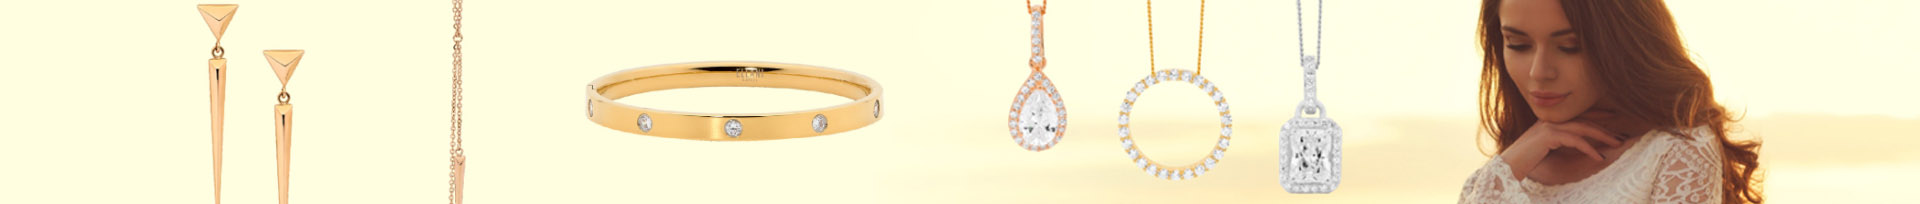 ellani-collections-category-banner1.jpg